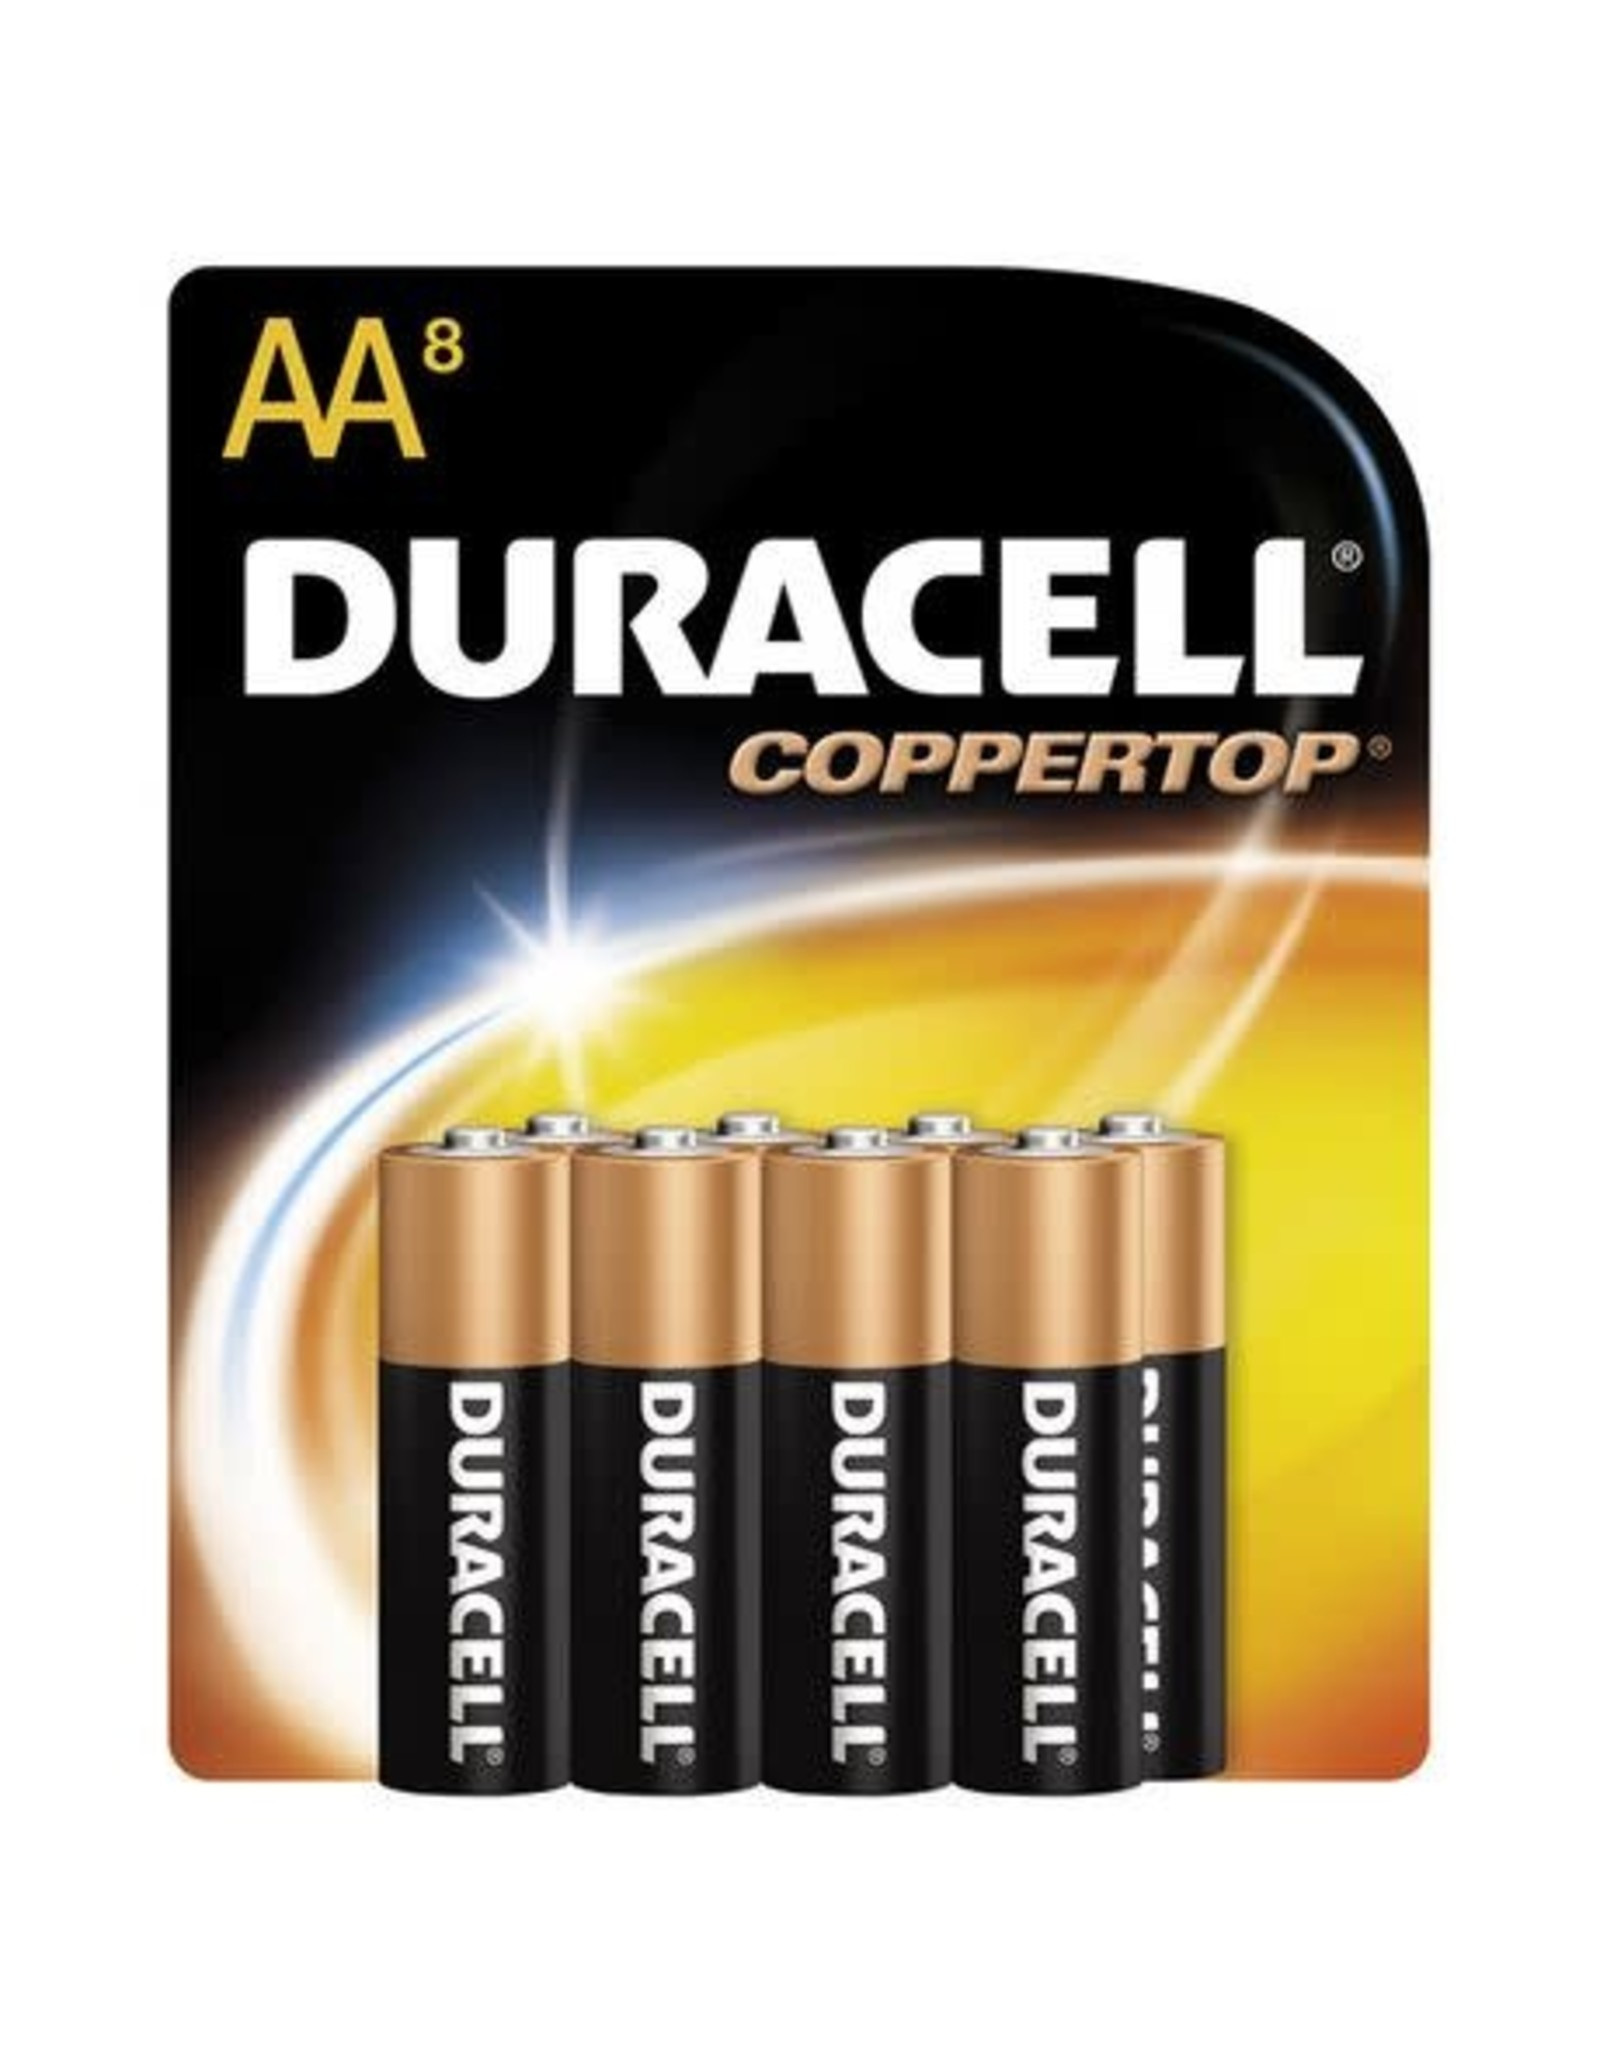 Duracell Canada Inc. Duracell Coppertop AA 8-Pack